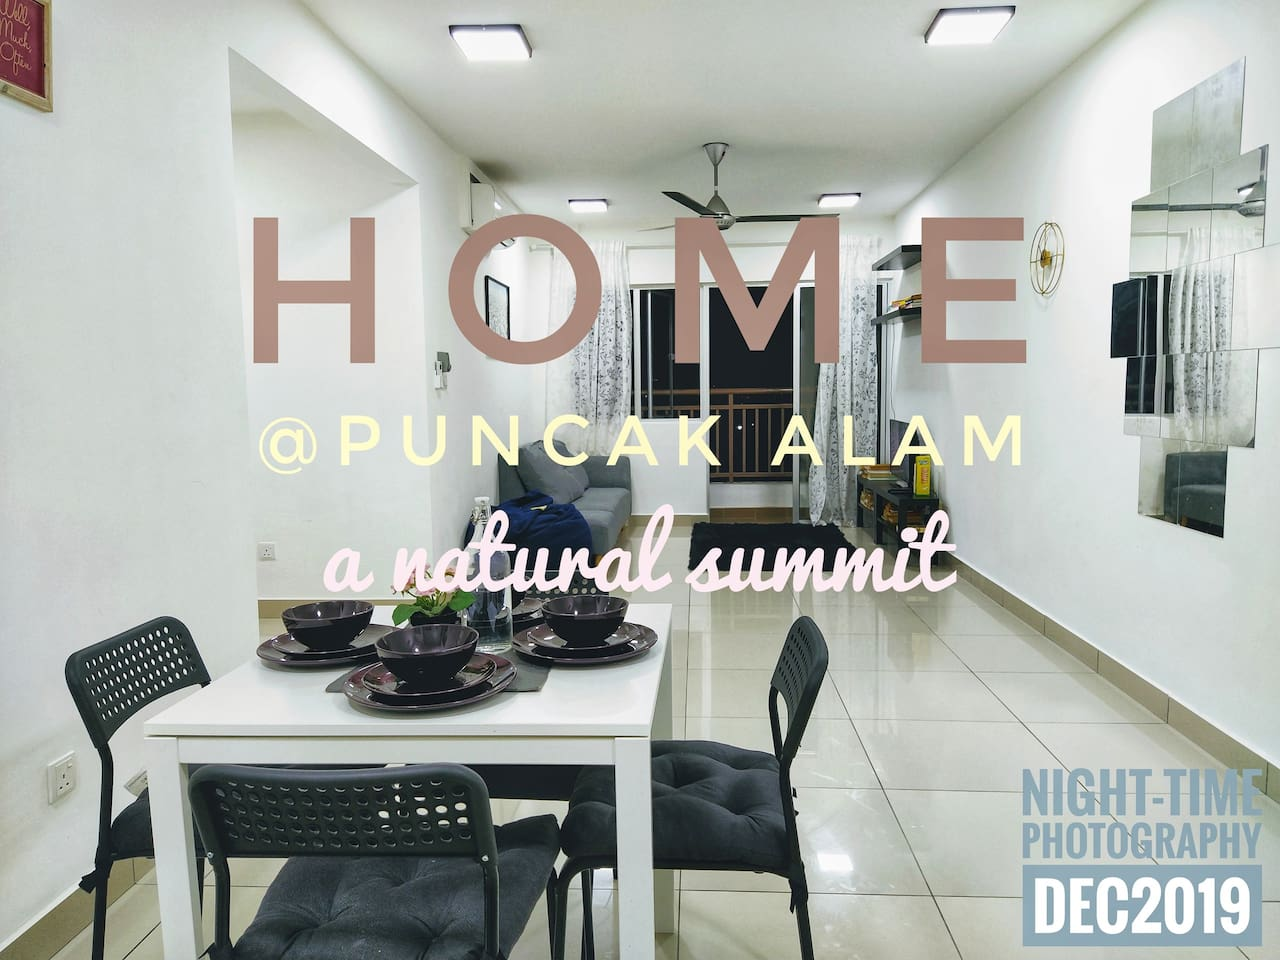 Welcome to Sentrovue Puncak Alam.   Photo as of Dec 2019, nightime photoshoot.